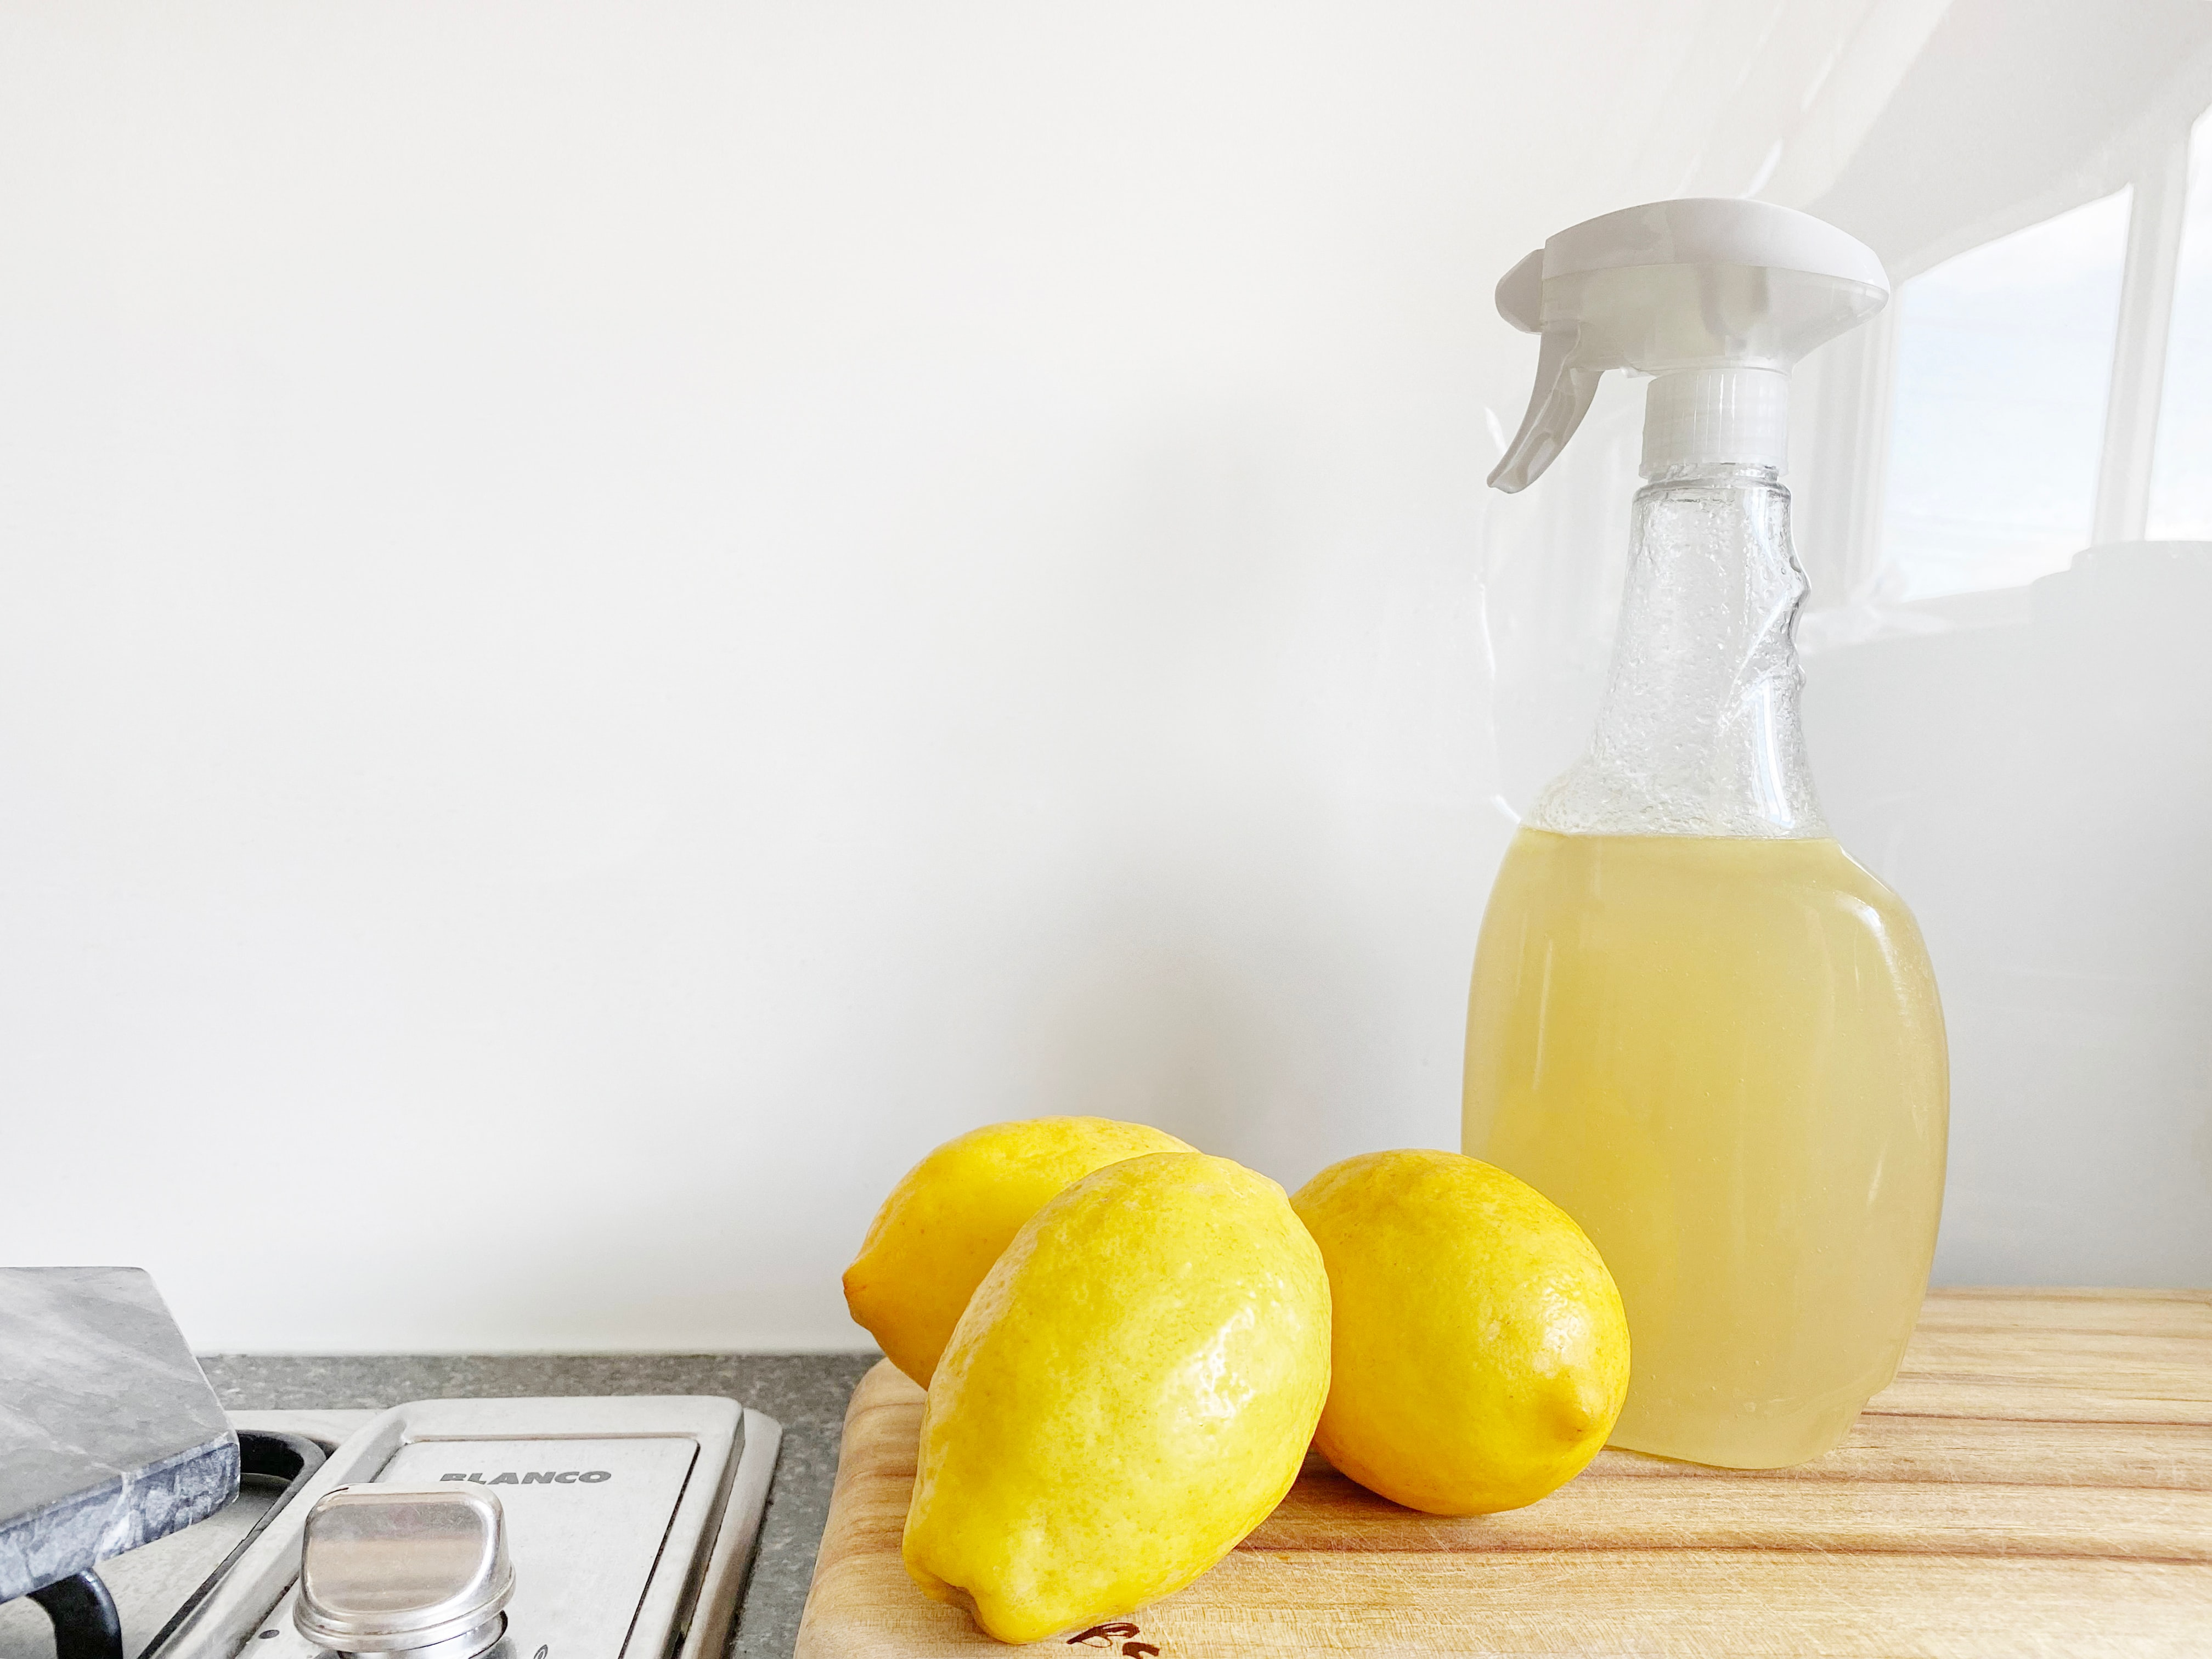 Lemons and cleaning spray bottle